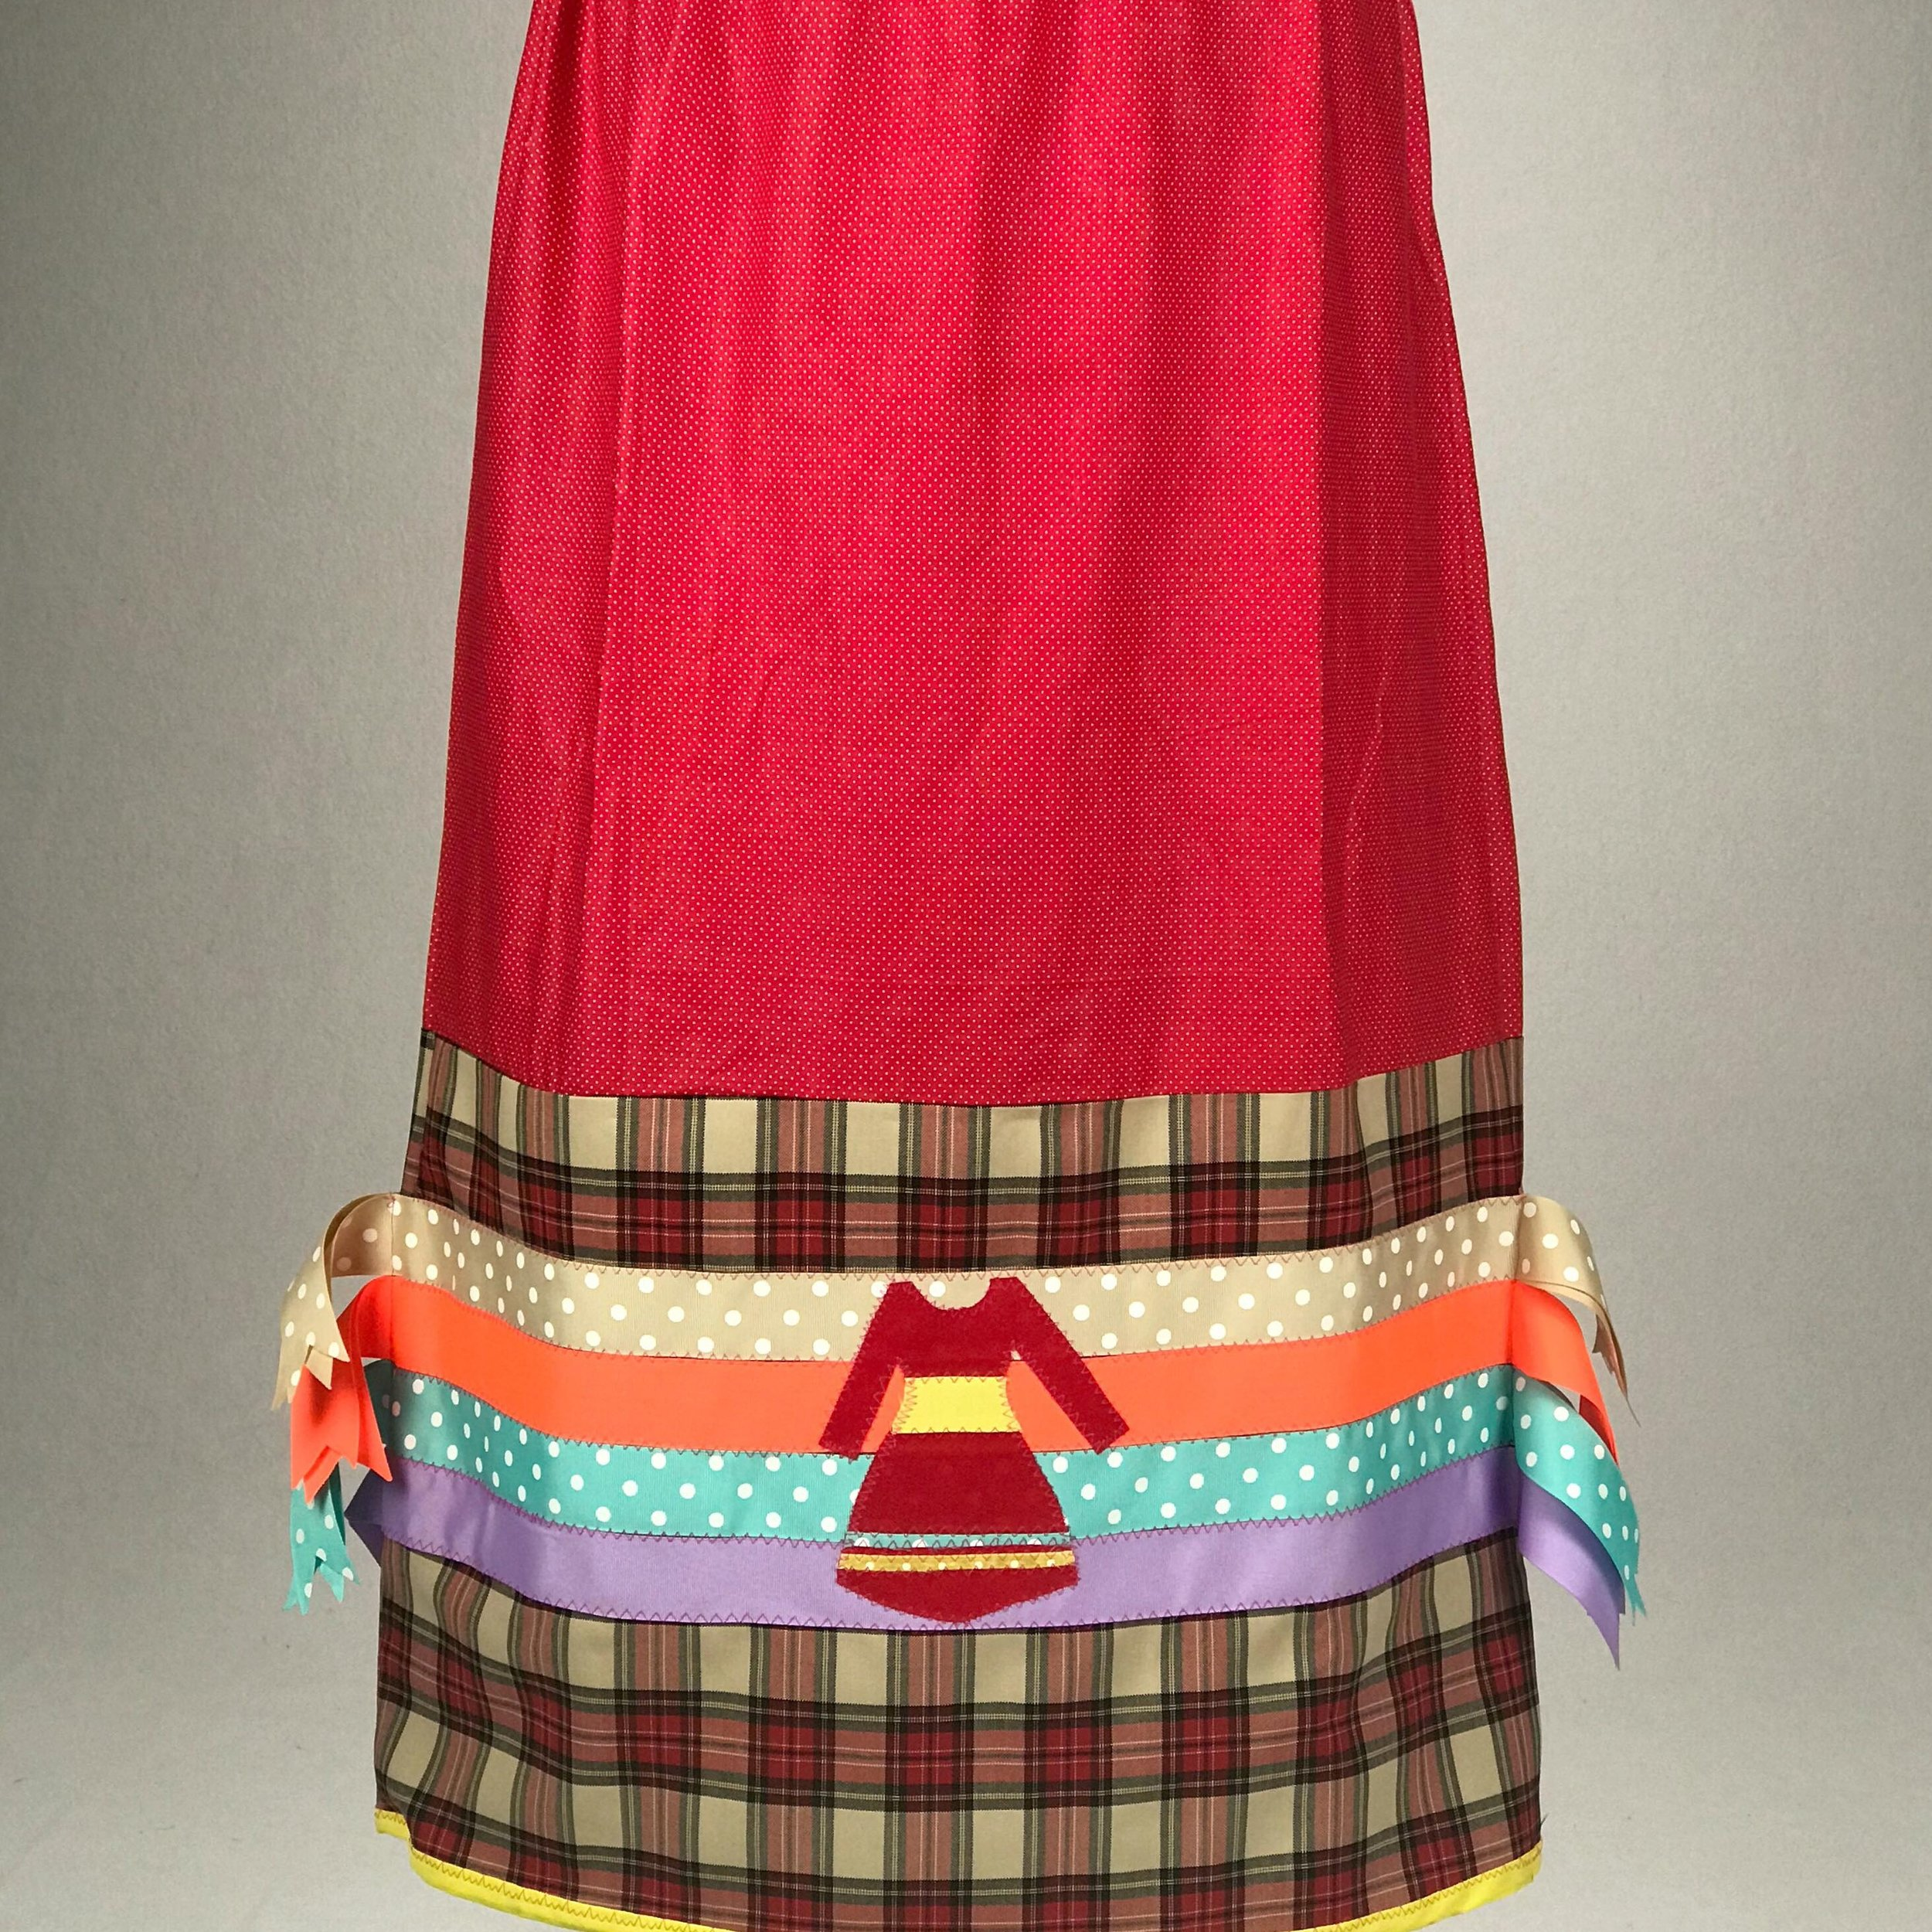 """Melissa's """"MMIW Ribbon Skirt"""" - A ribbon skirt created to honor Missing and Murdered Indigenous Women, an epidemic that has gained increased awareness over the last decade."""